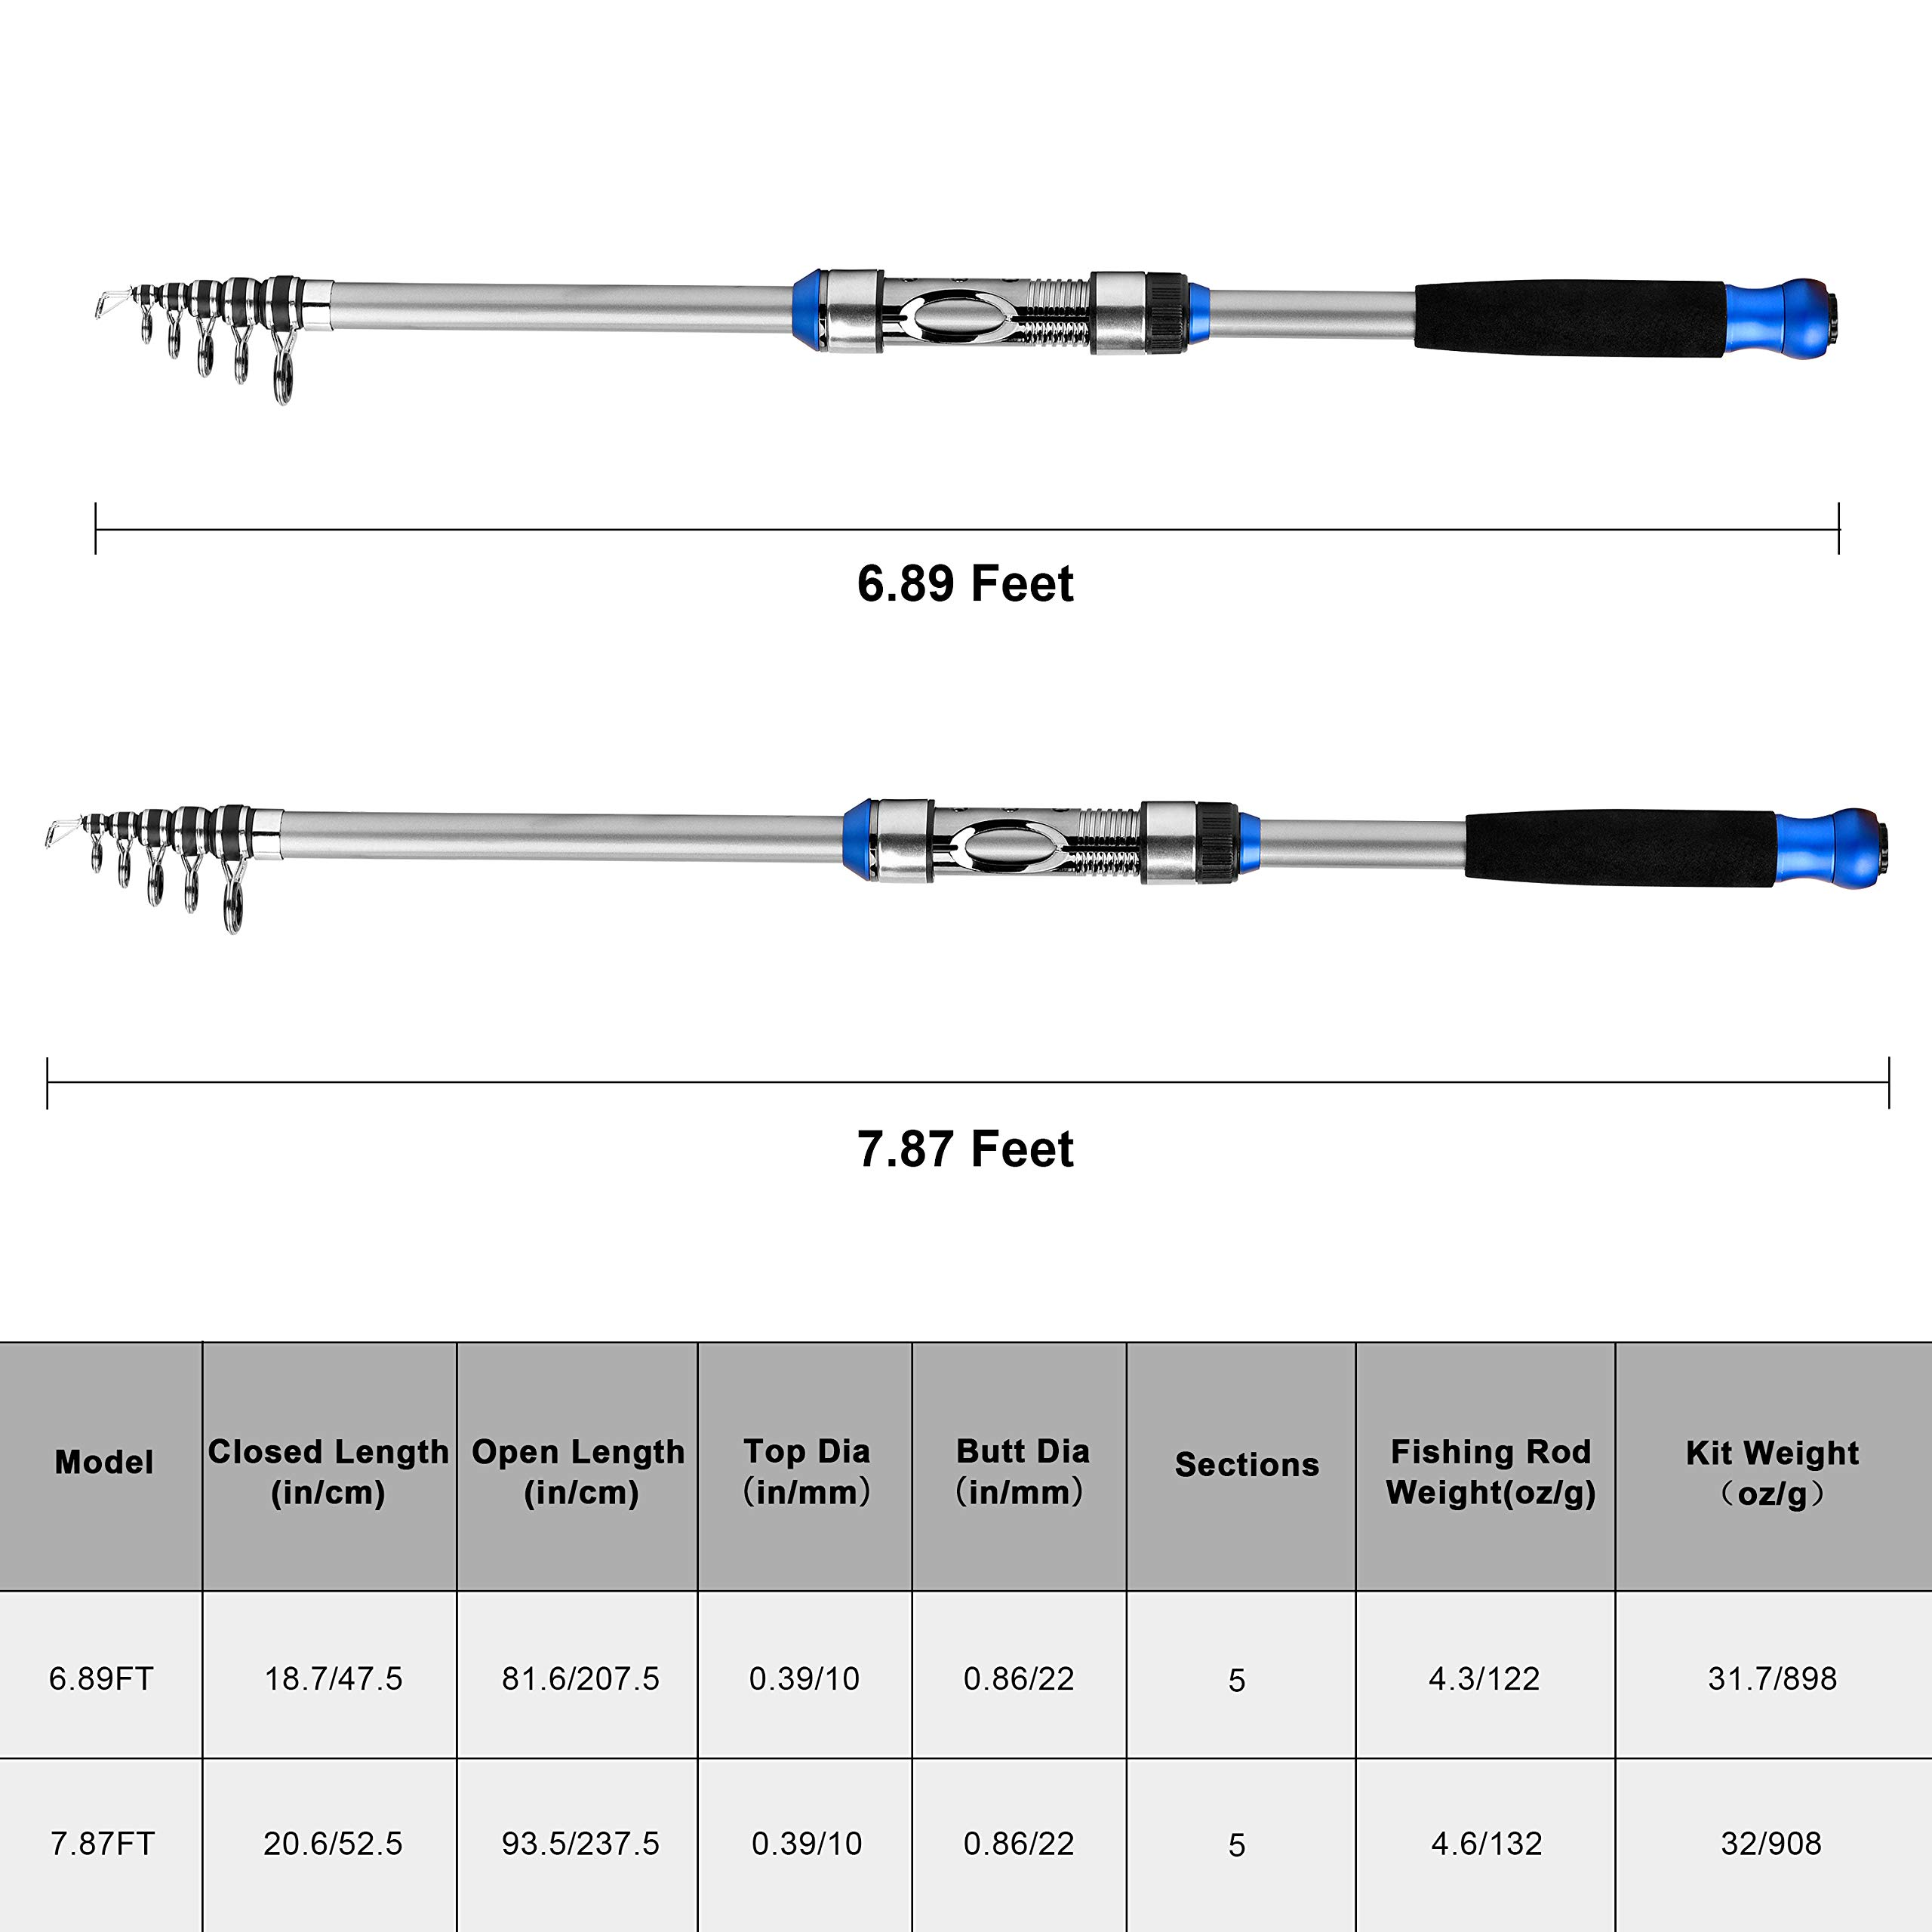 ZACX Telescopic Fishing Rod and Reel Combos Full Kits, Spinning Fishing Gear Pole Sets with Line Lures Hooks and Premium Portable Case for Sea Saltwater Freshwater, Fishing Gifts for Men (6.89) by ZACX (Image #6)